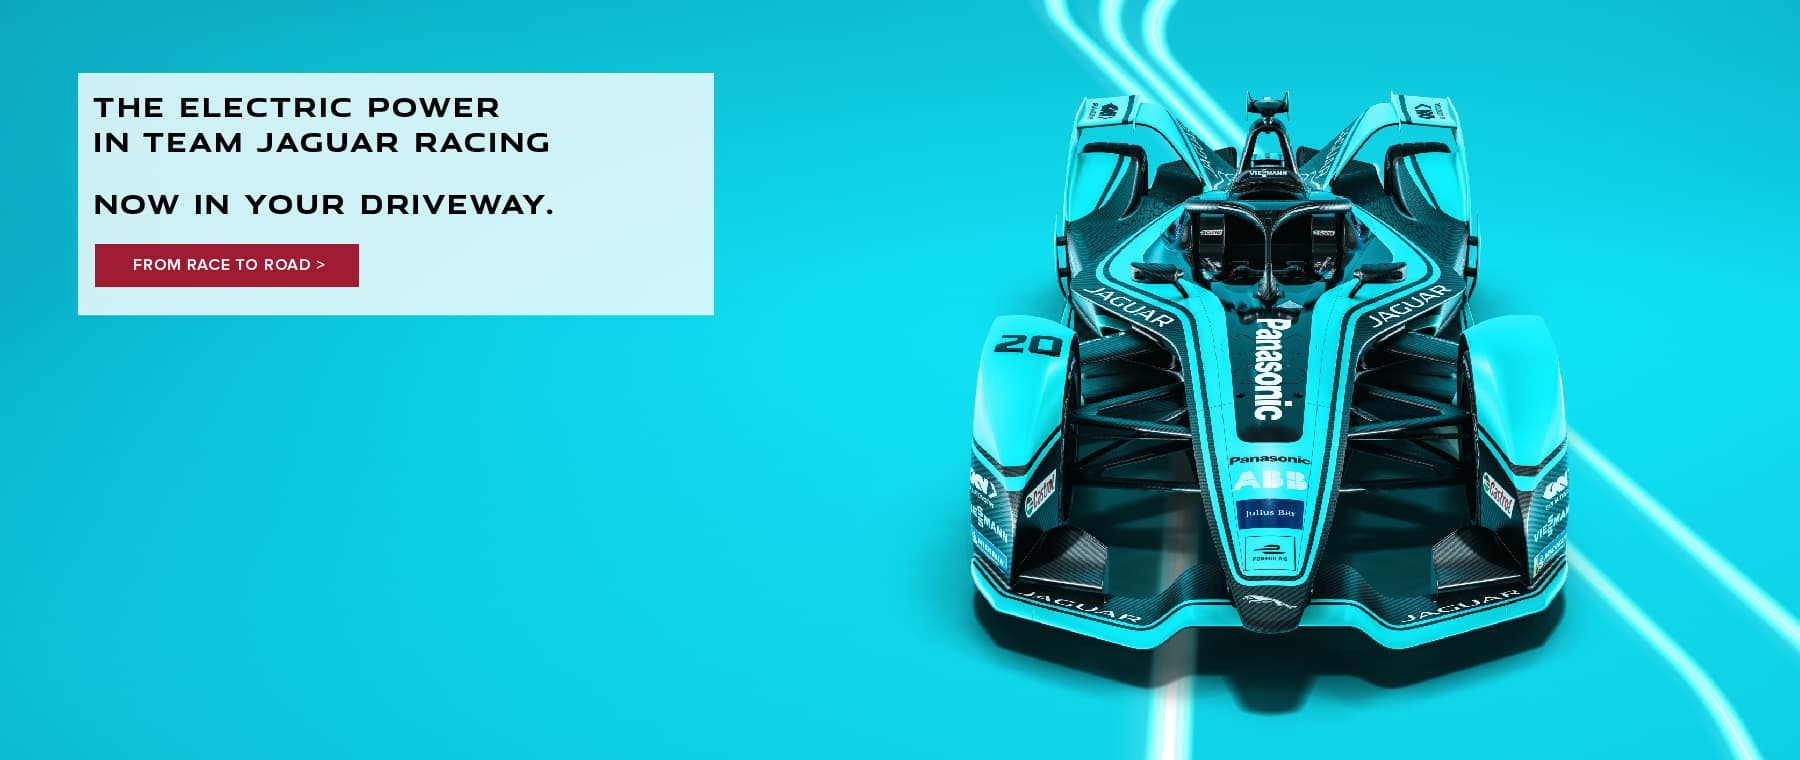 THE ELECTRIC POWER IN TEAM JAGUAR RACING. NOW IN YOUR DRIVEWAY. FROM RACE TO ROAD. BLUE JAGUAR FORMULA E RACE CAR.